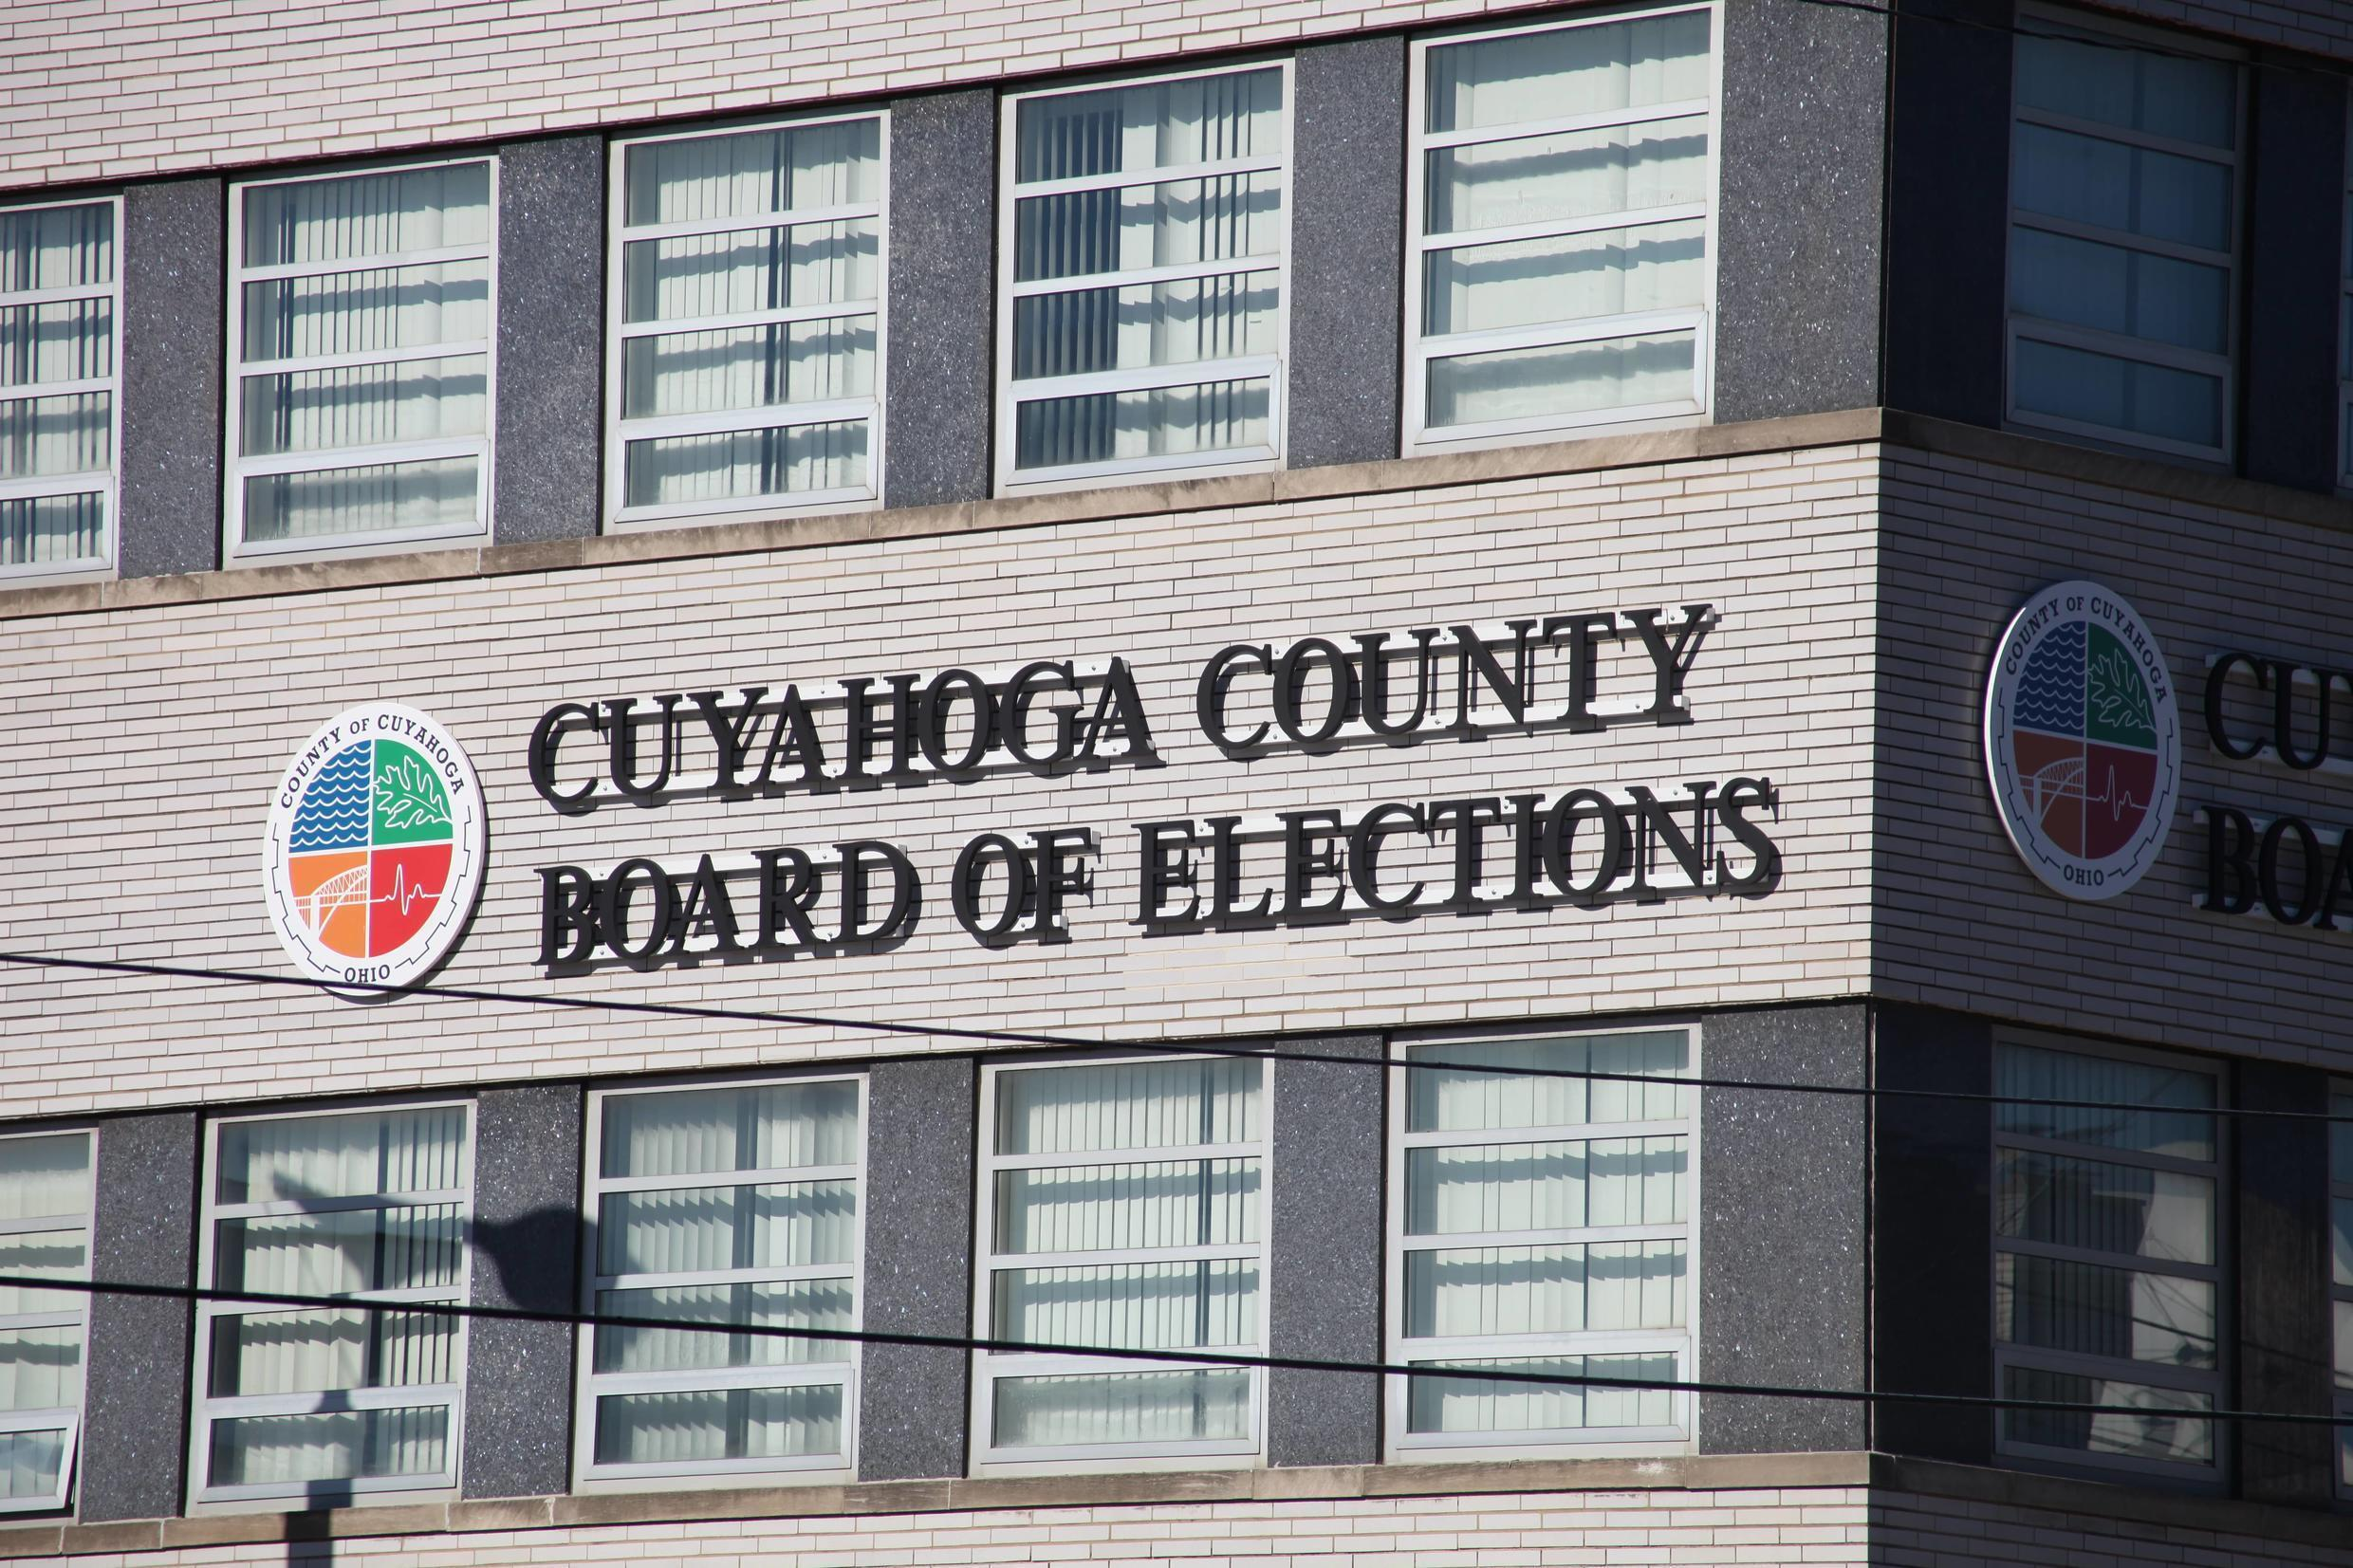 The Board of Elections building in Cuyahoga county